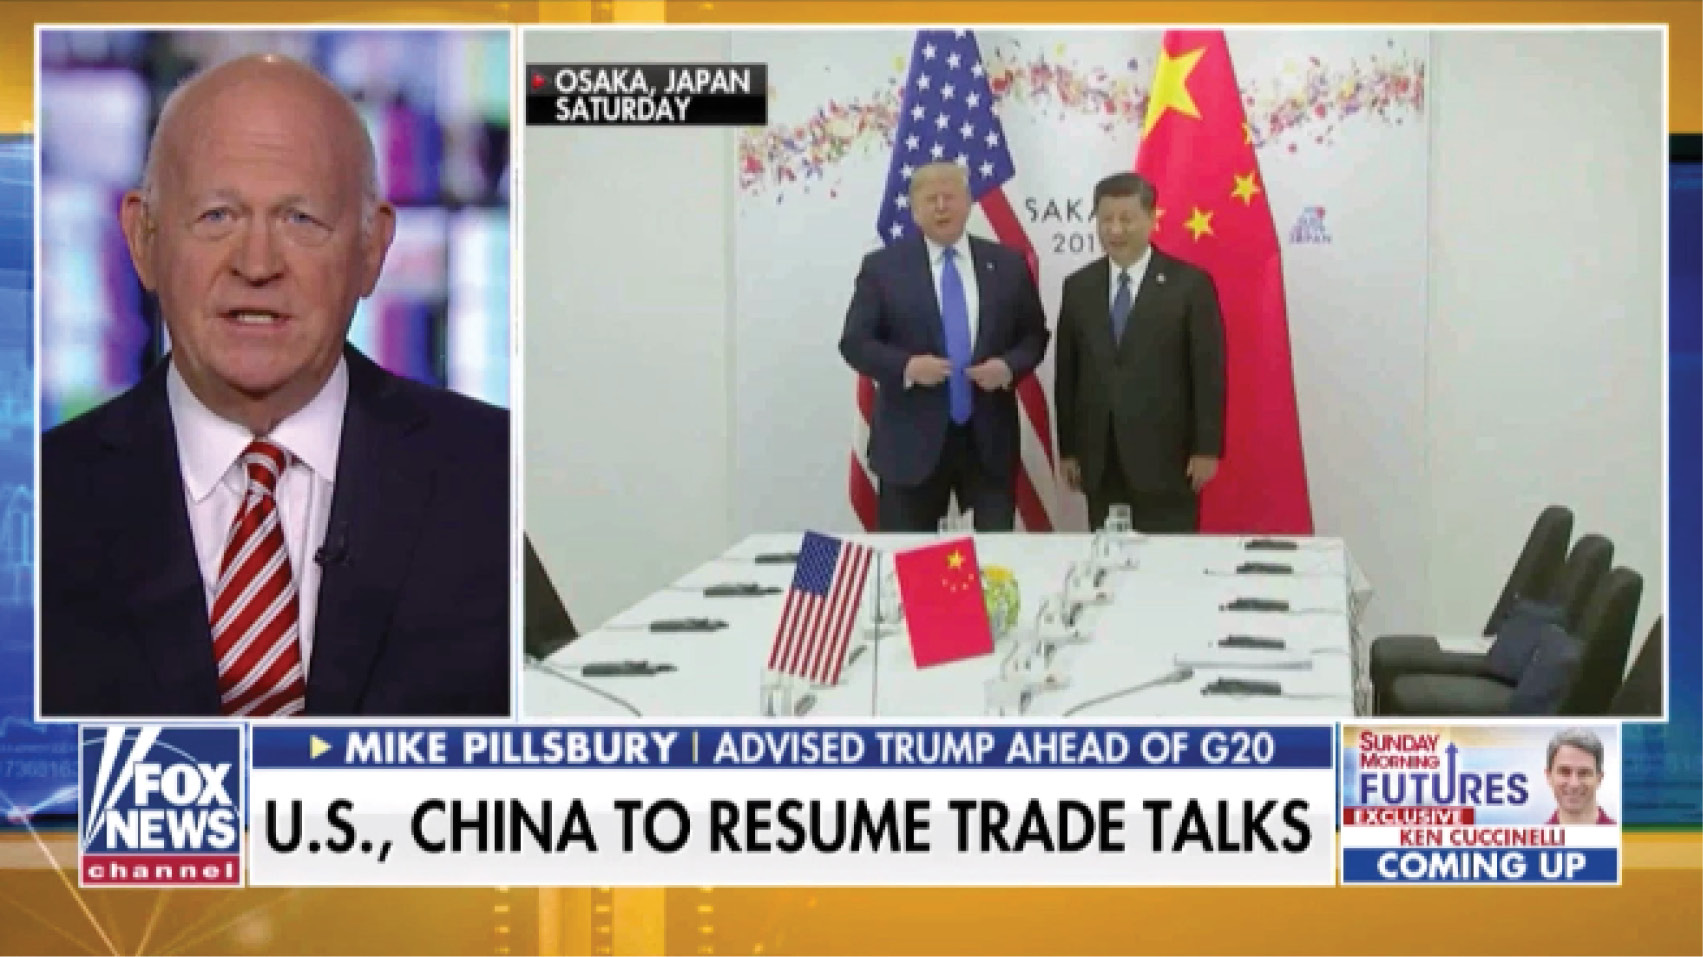 Michael Pillsbury weighs in on the future of U.S.-China trade talks.